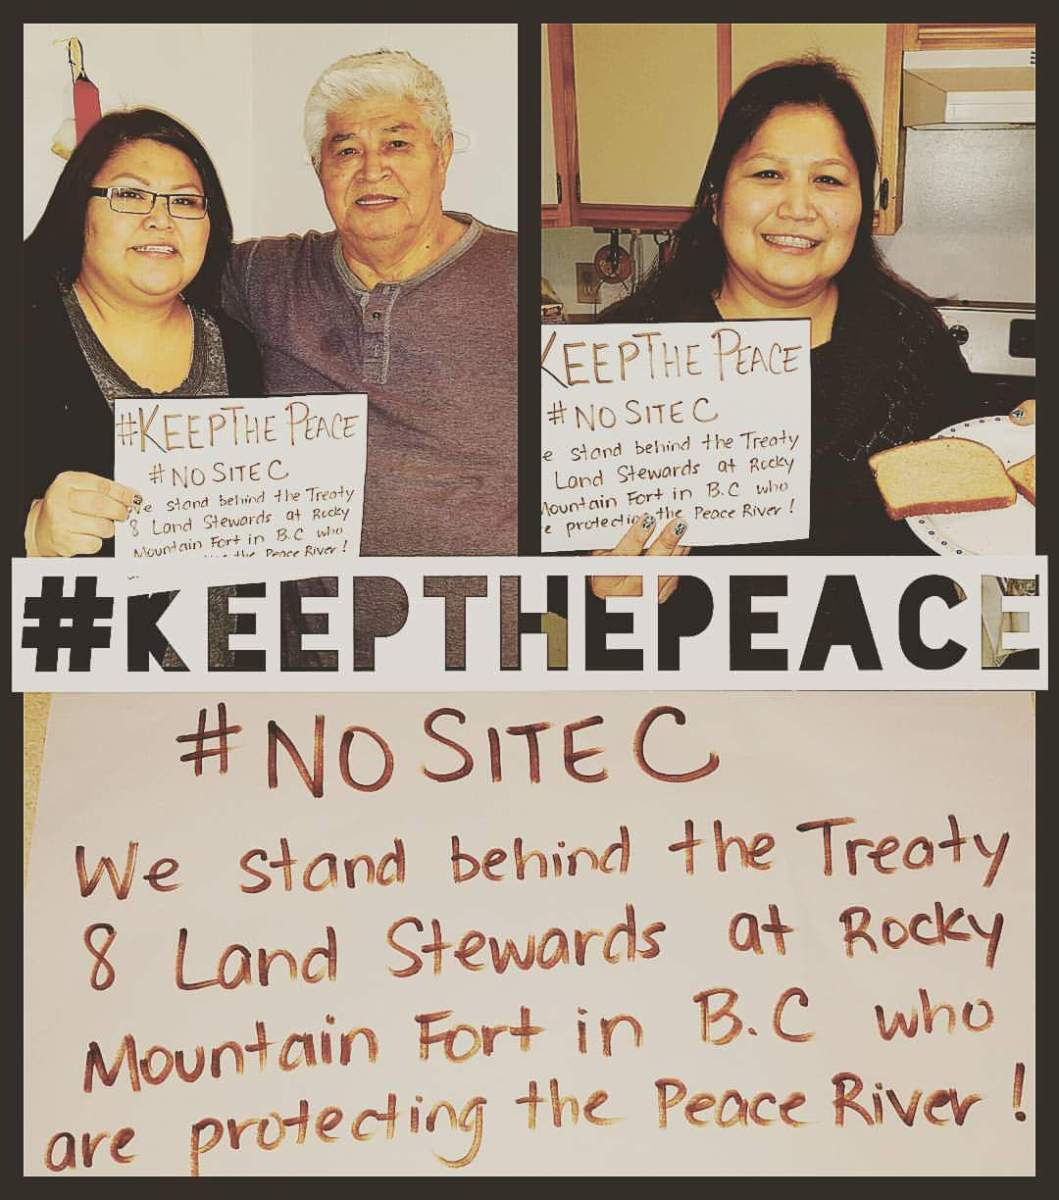 Solidarity for the Treaty 8 Stewards of the Land #Keepthepeace